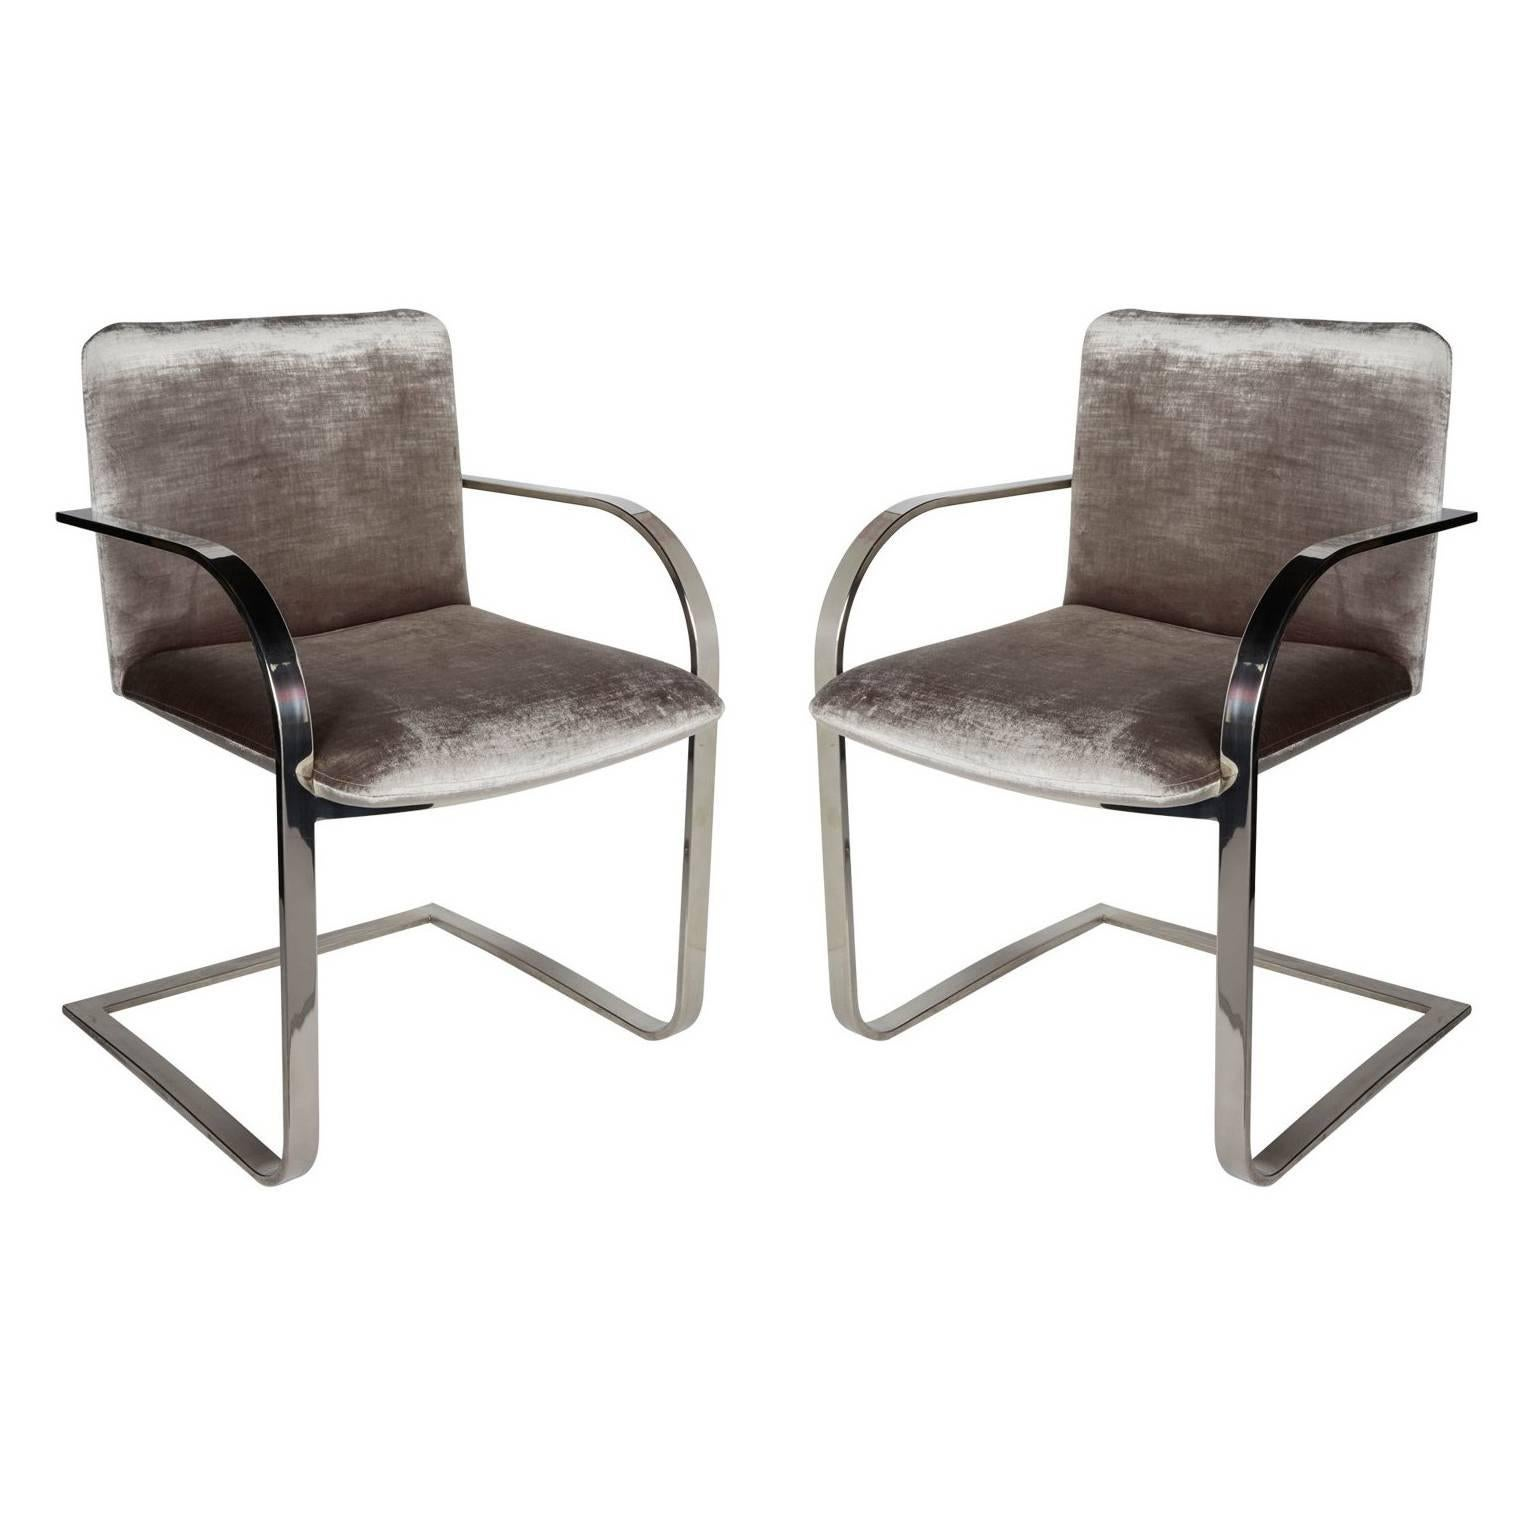 Or Brueton Mid Century Office Modern Chairs Side Pair Of By mvNn0w8yO